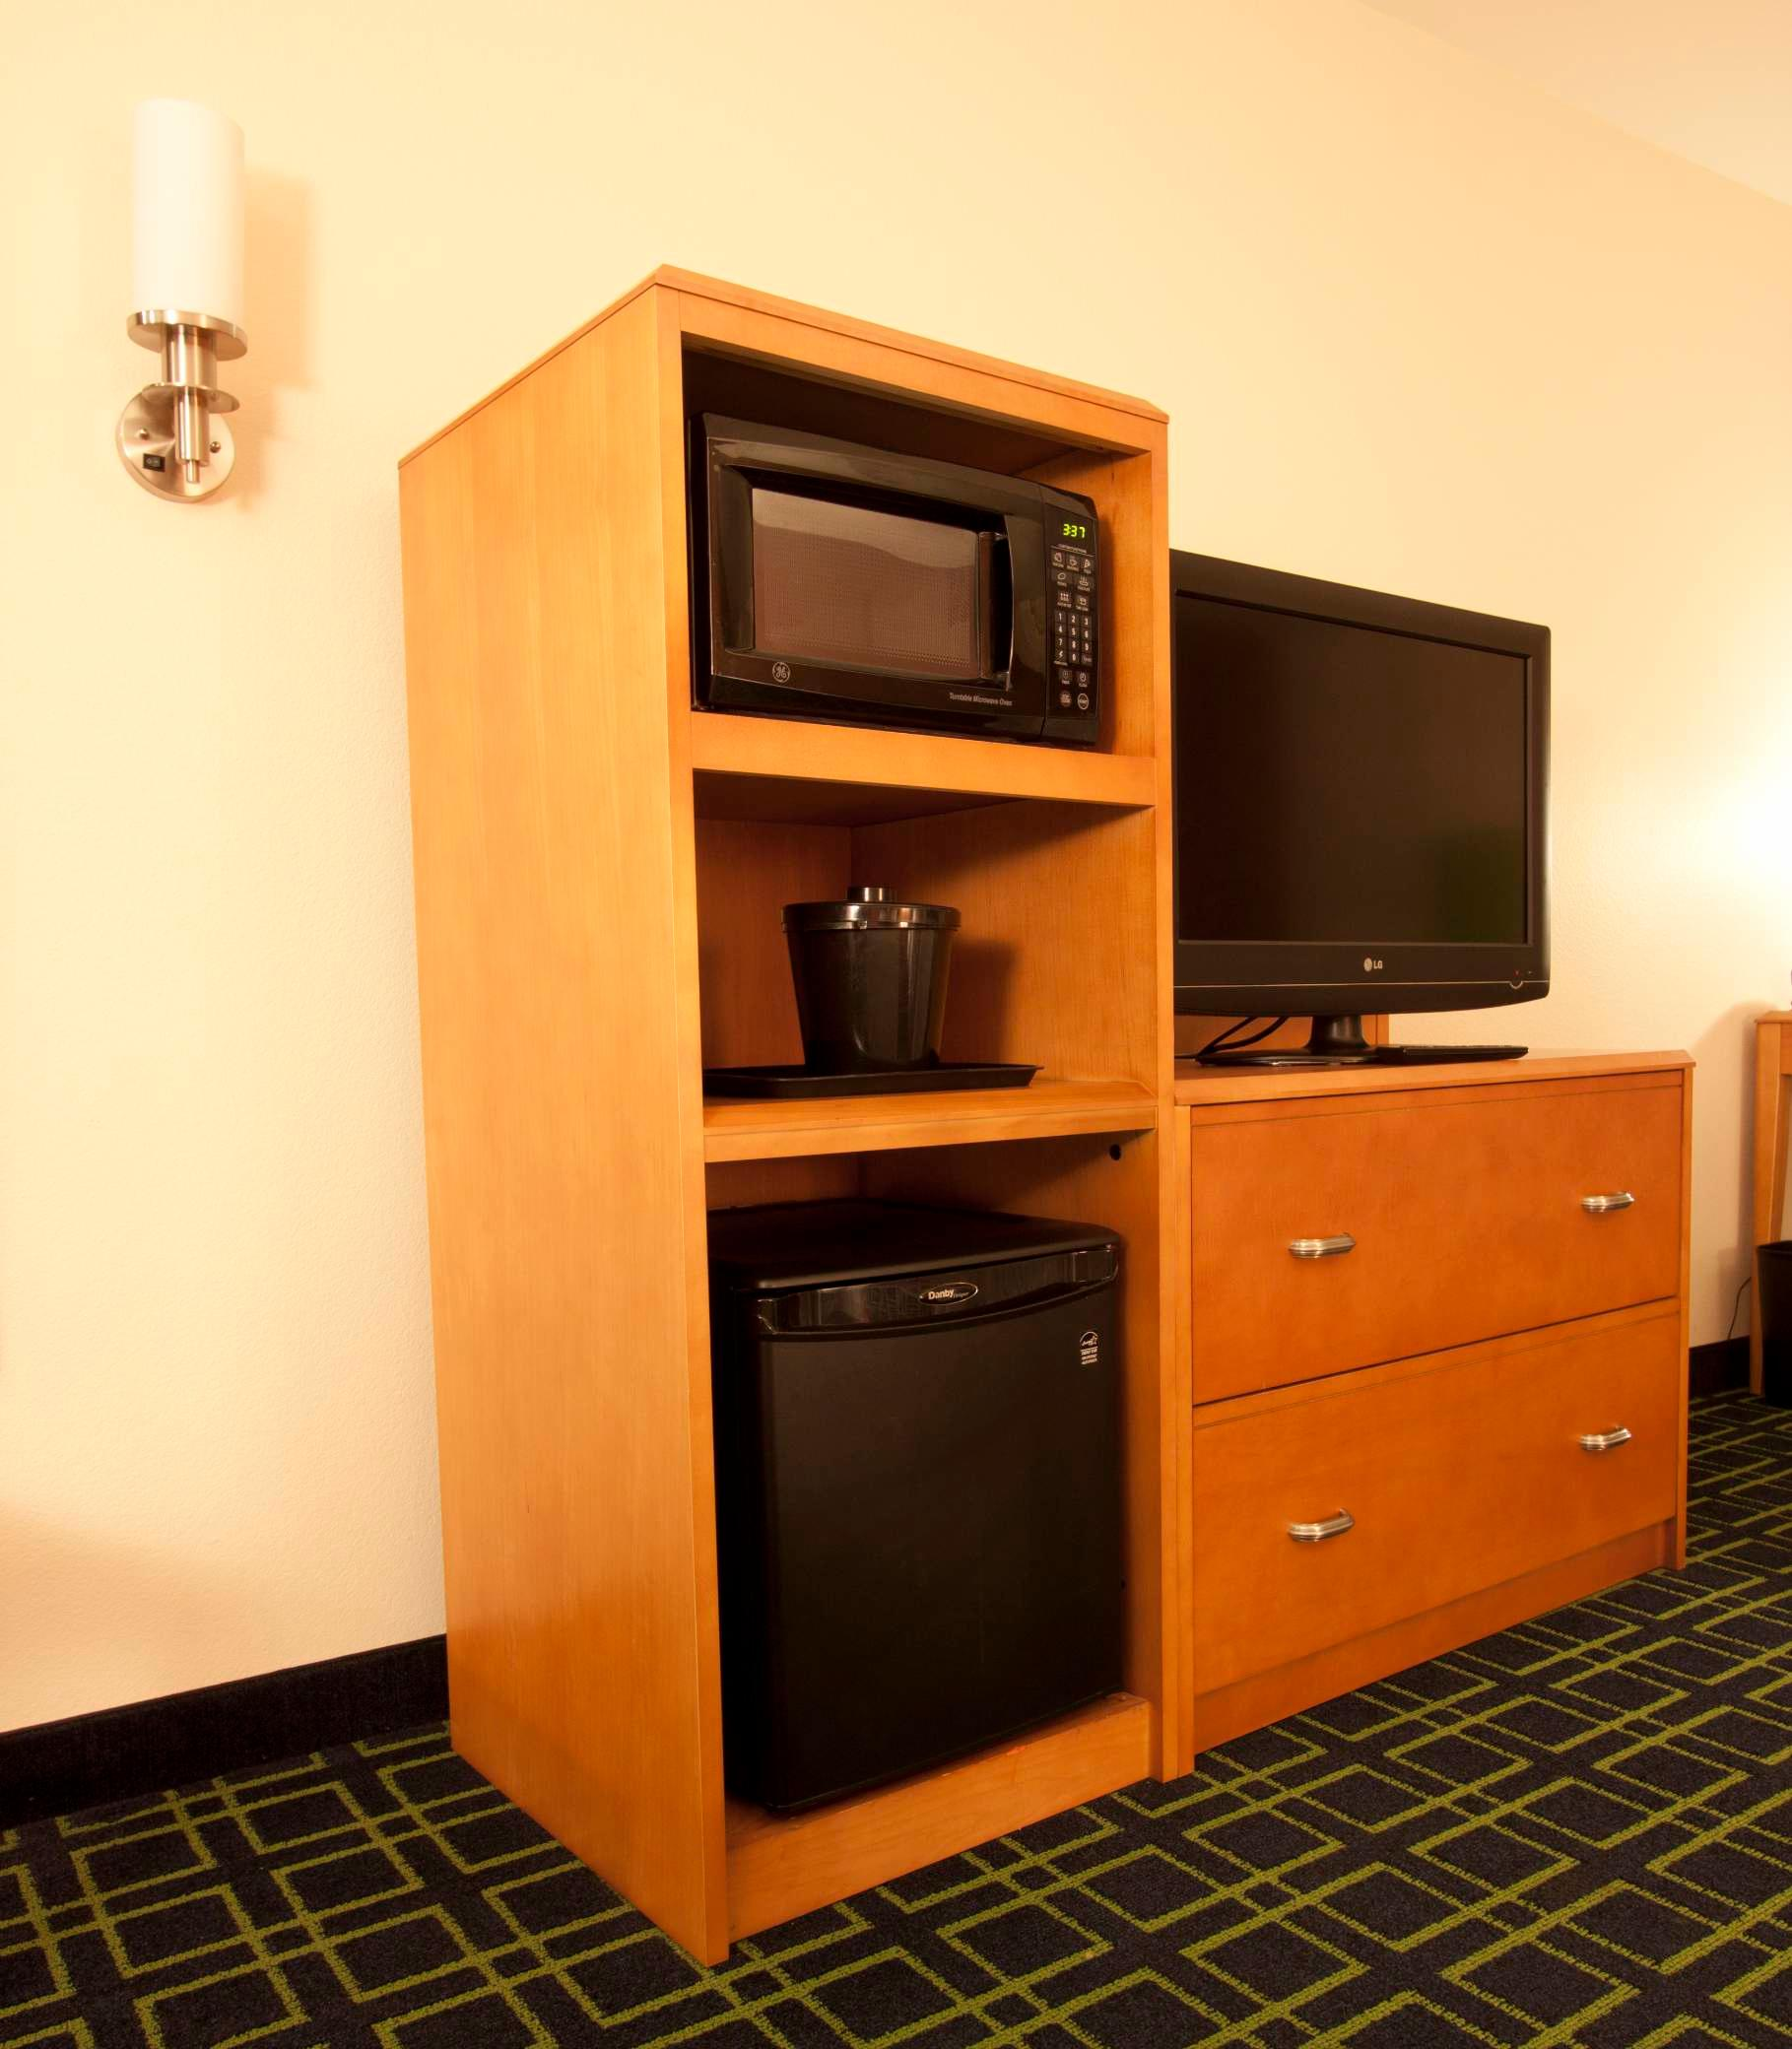 Fairfield Inn & Suites by Marriott Texarkana image 3